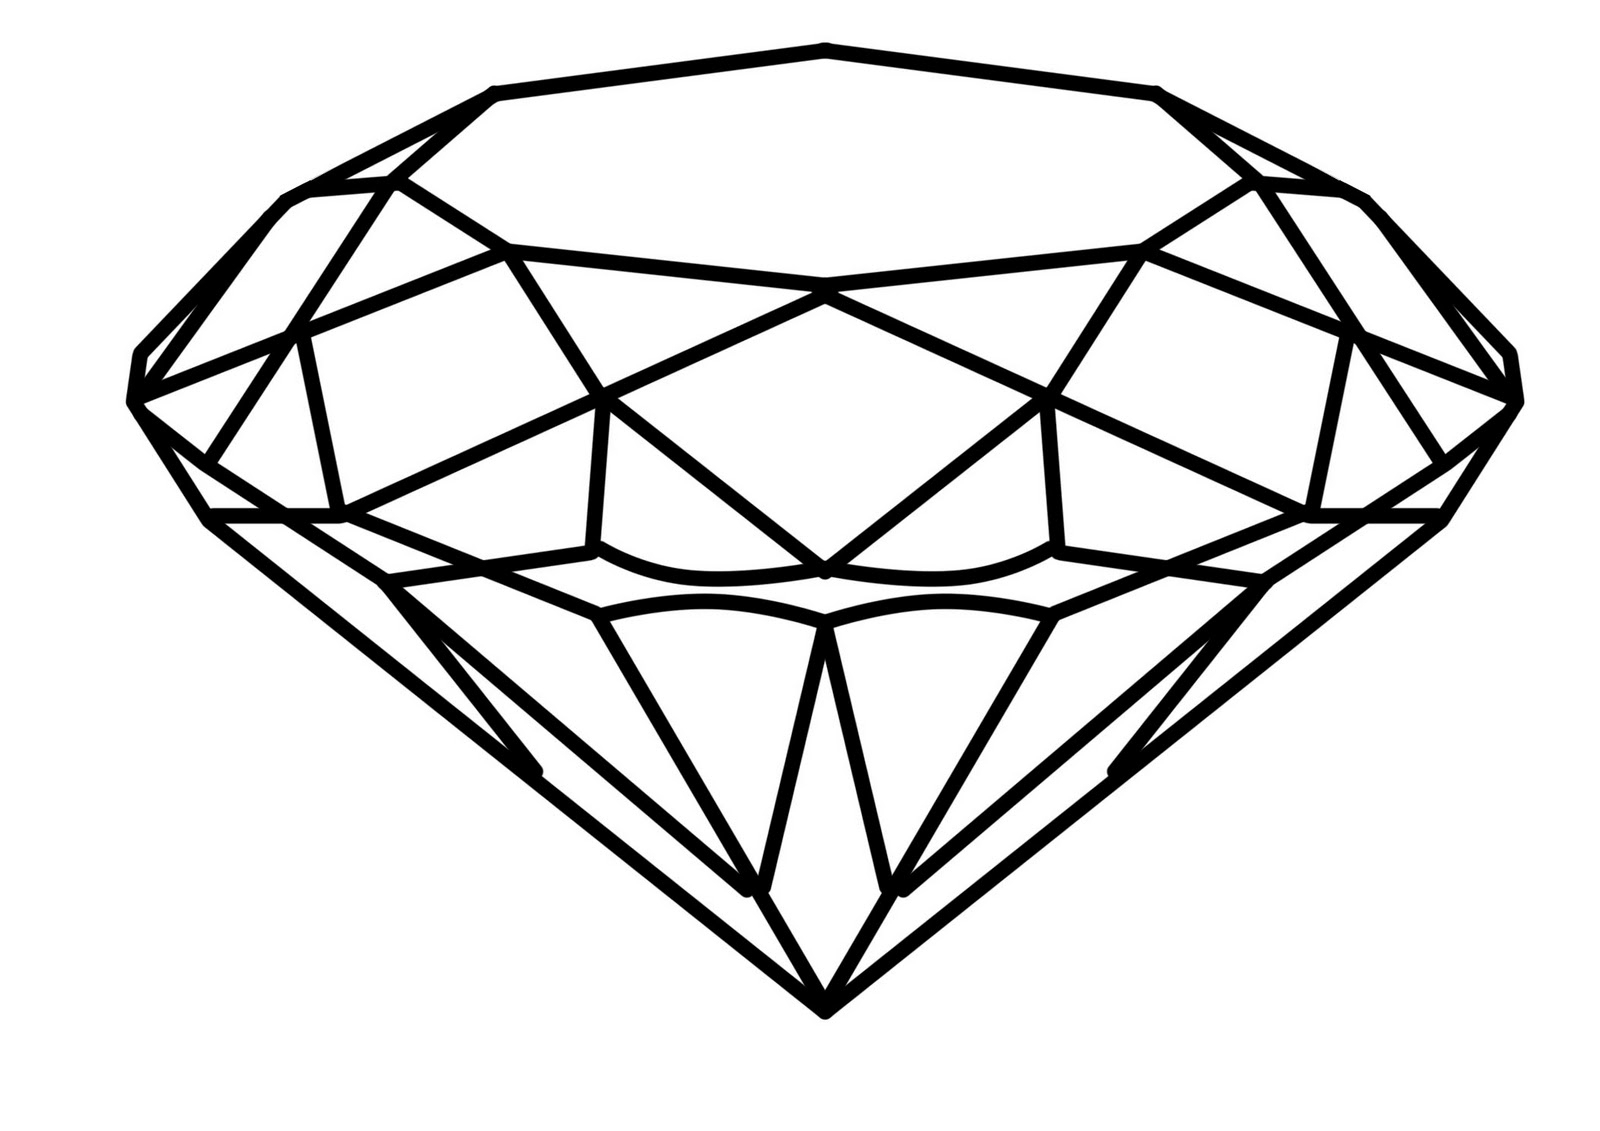 The Best Free Diamond Drawing Images Download From